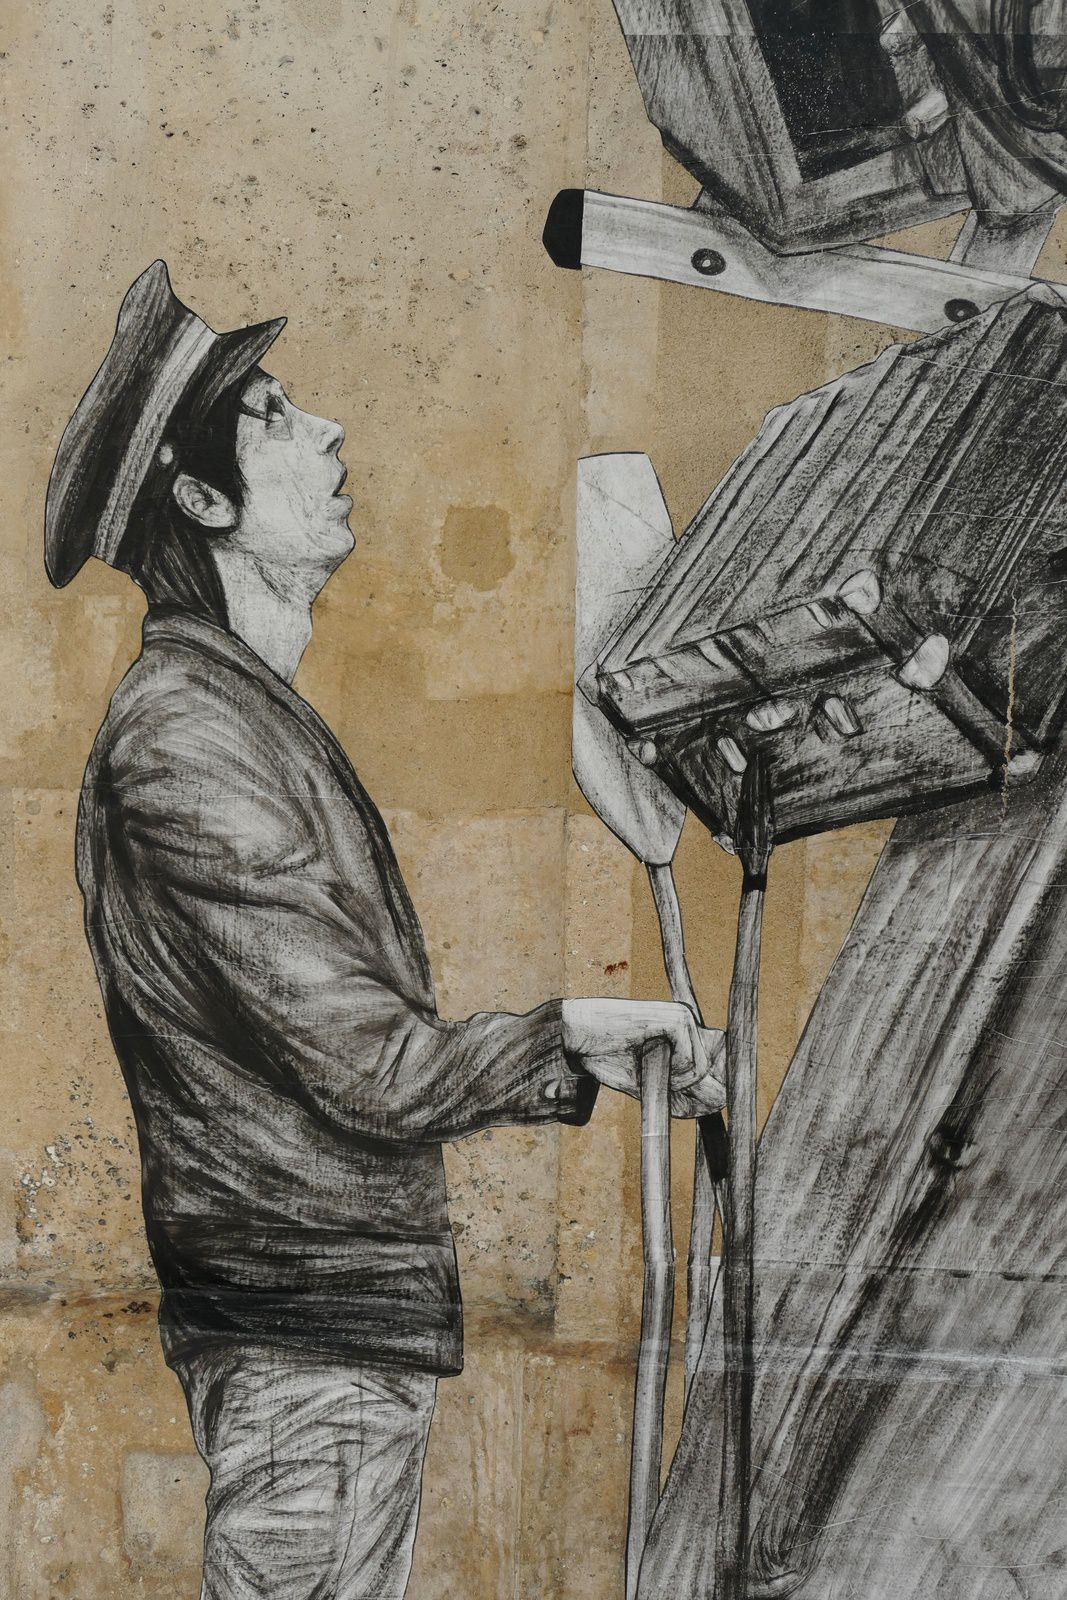 oeuvres de Levalet http://www.levalet.org/ photos by Chry 8 juillet 2015